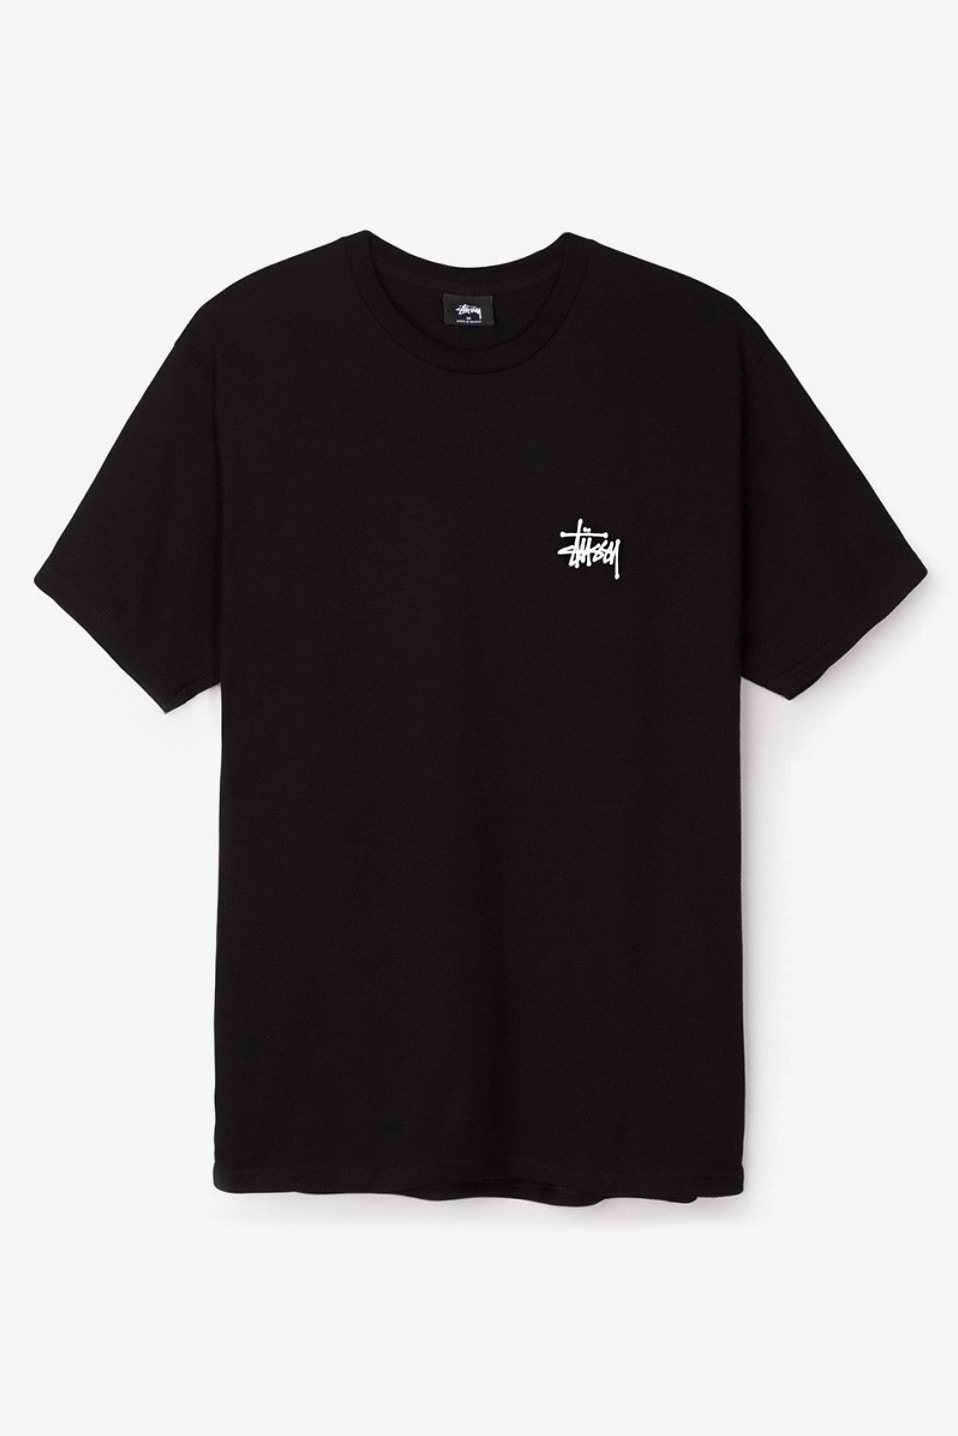 http---bae.hypebeast.com-files-2017-07-stussy-2017-july-releases-7